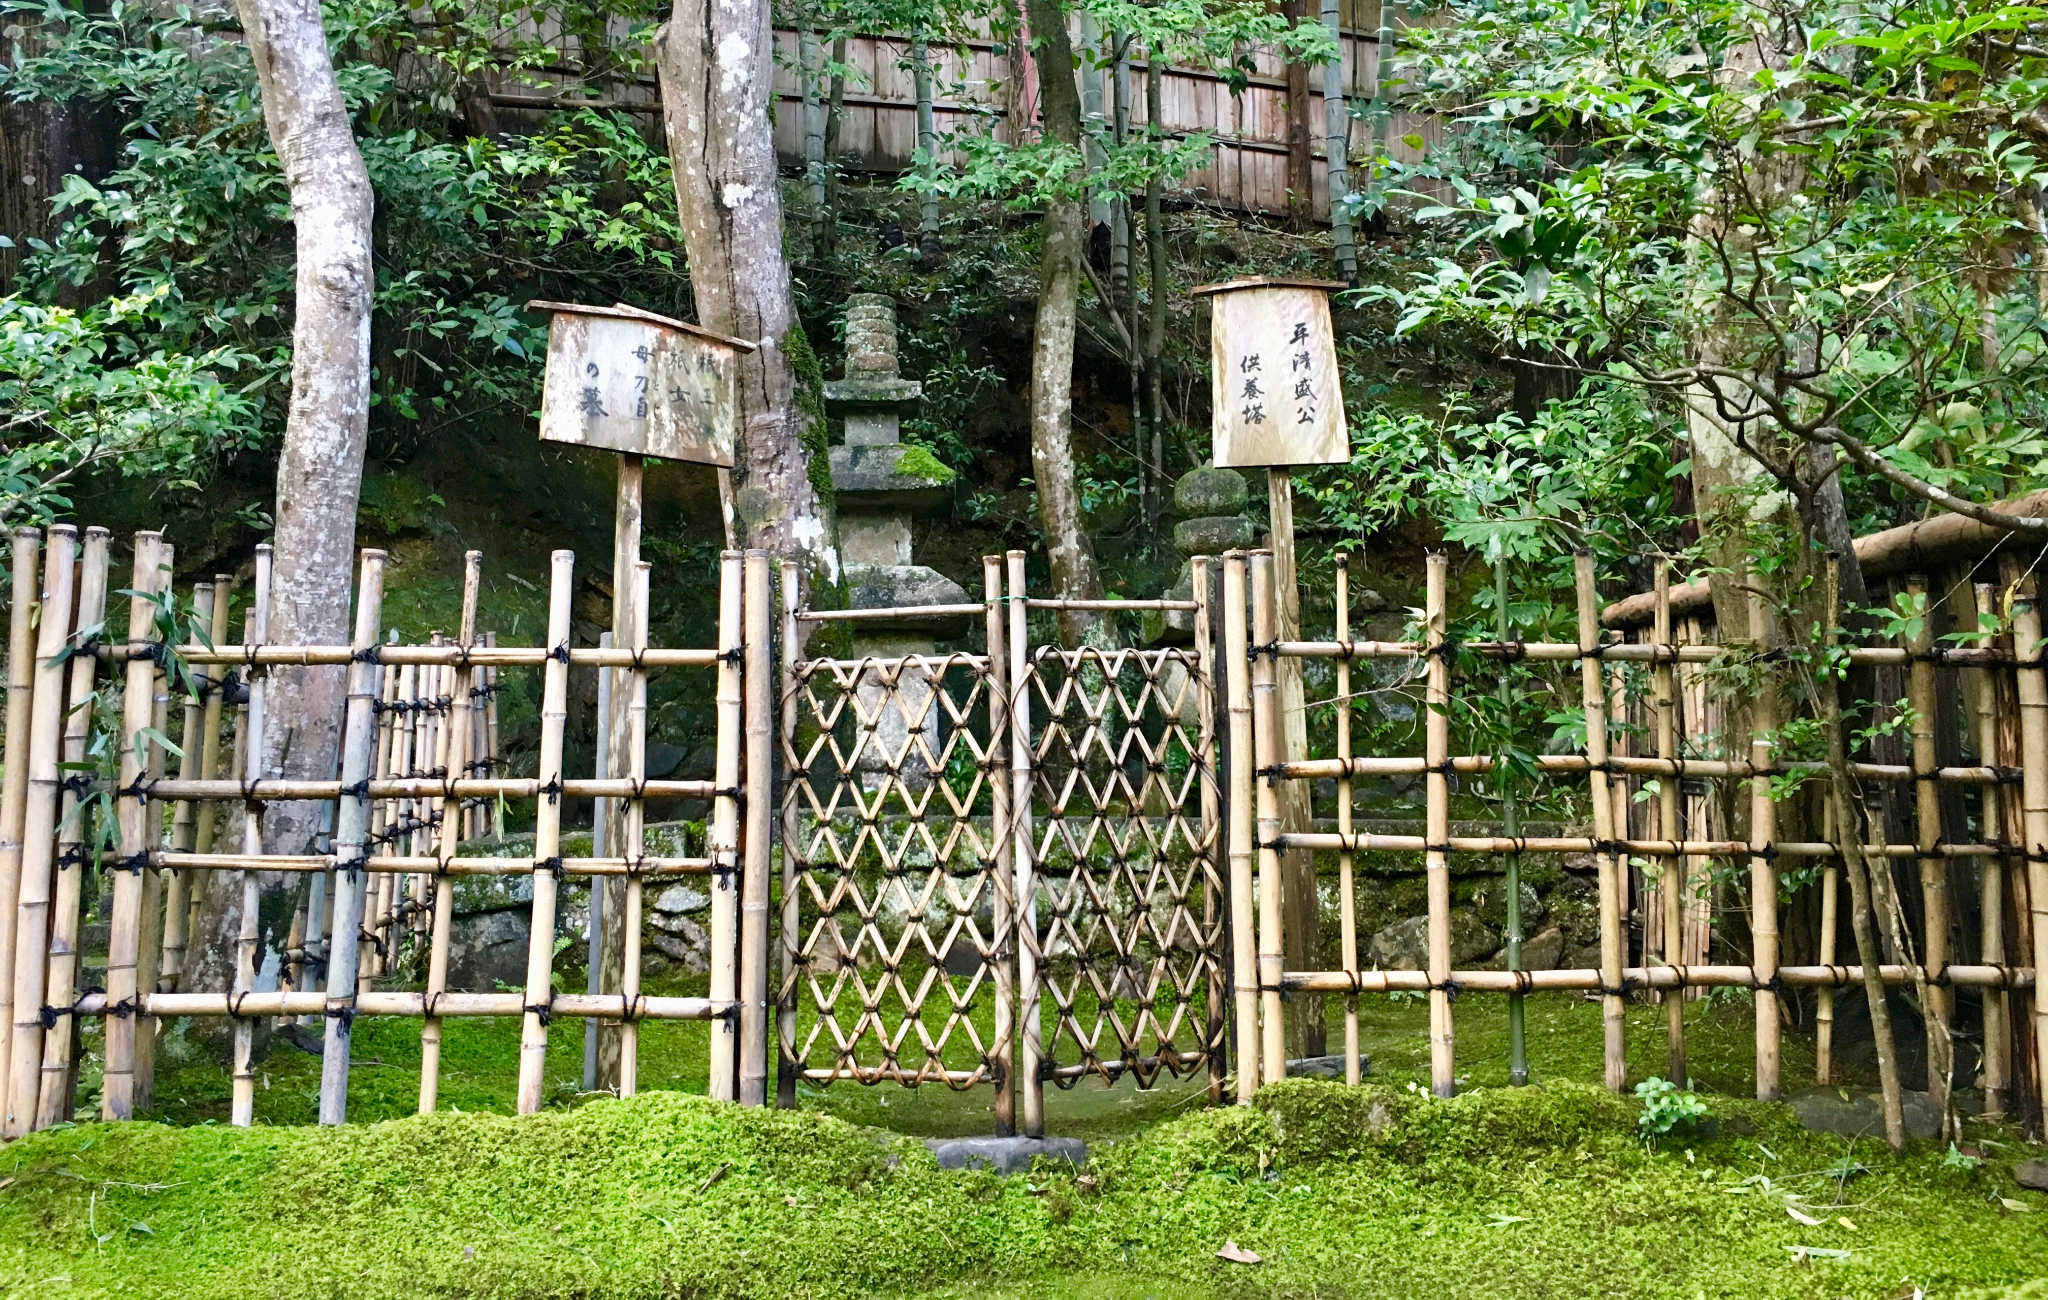 Stunning cloture bambou jardin japonais ideas design for Conception de jardin japonais